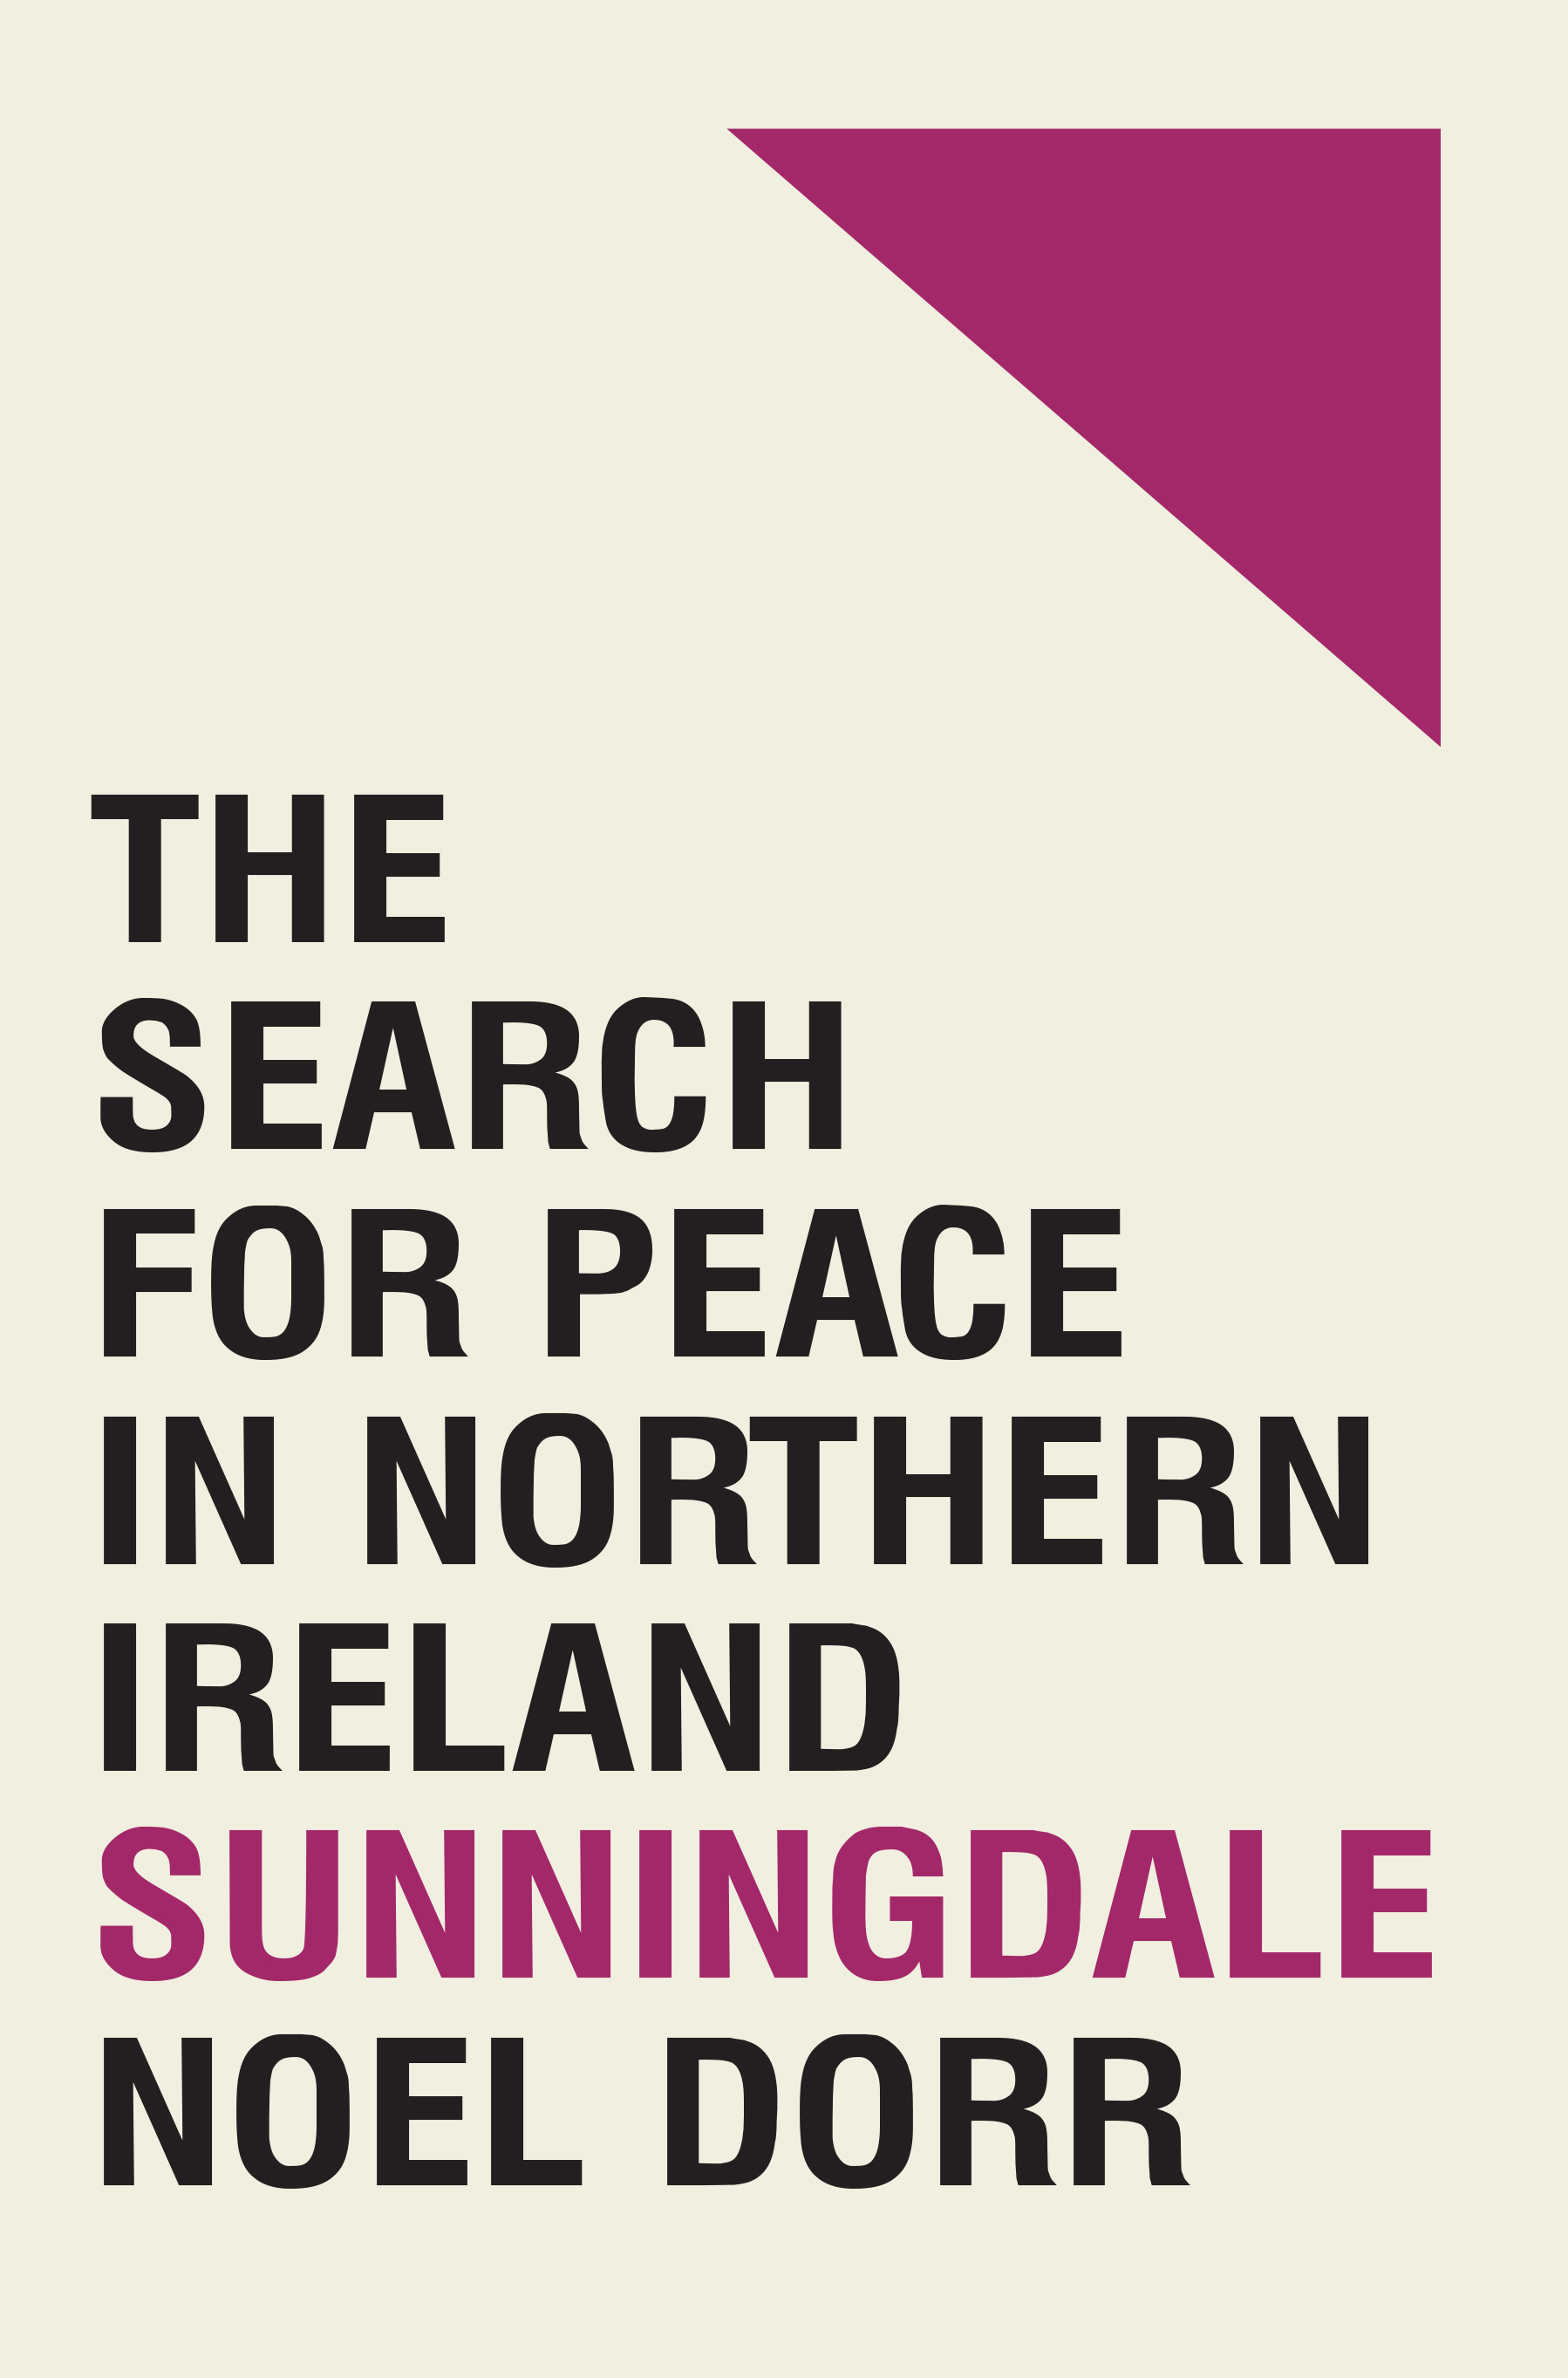 Sunningdale The Search For Peace In Northern Ireland Royal Irish